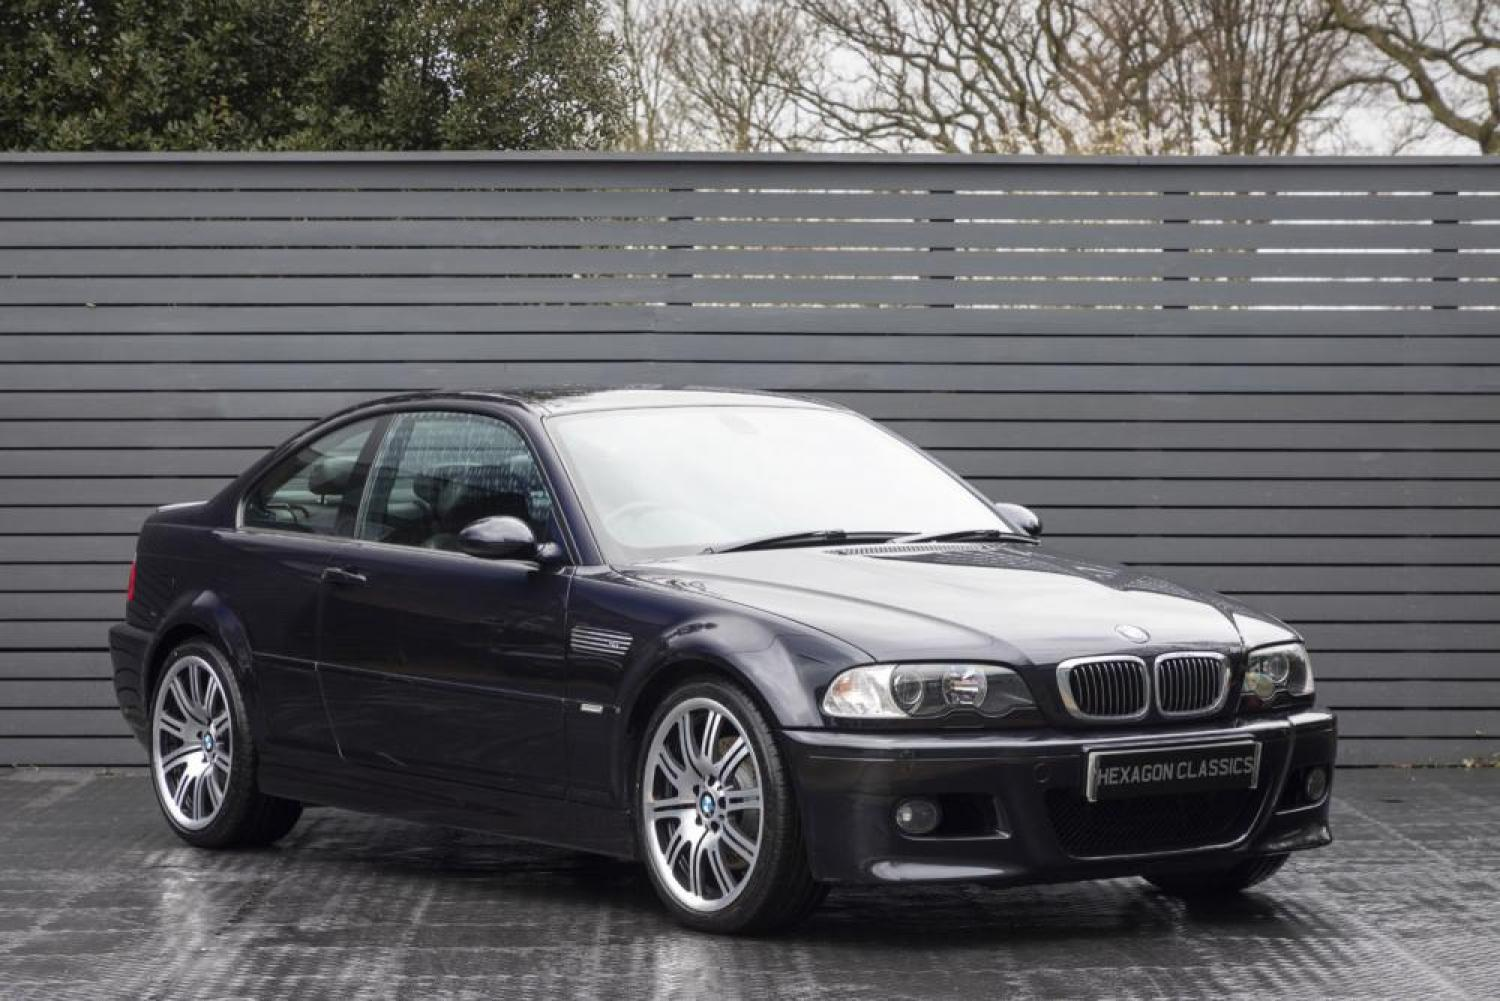 Bmw M3 E46 Coupe 2005 Hexagon Classic And Modern Cars